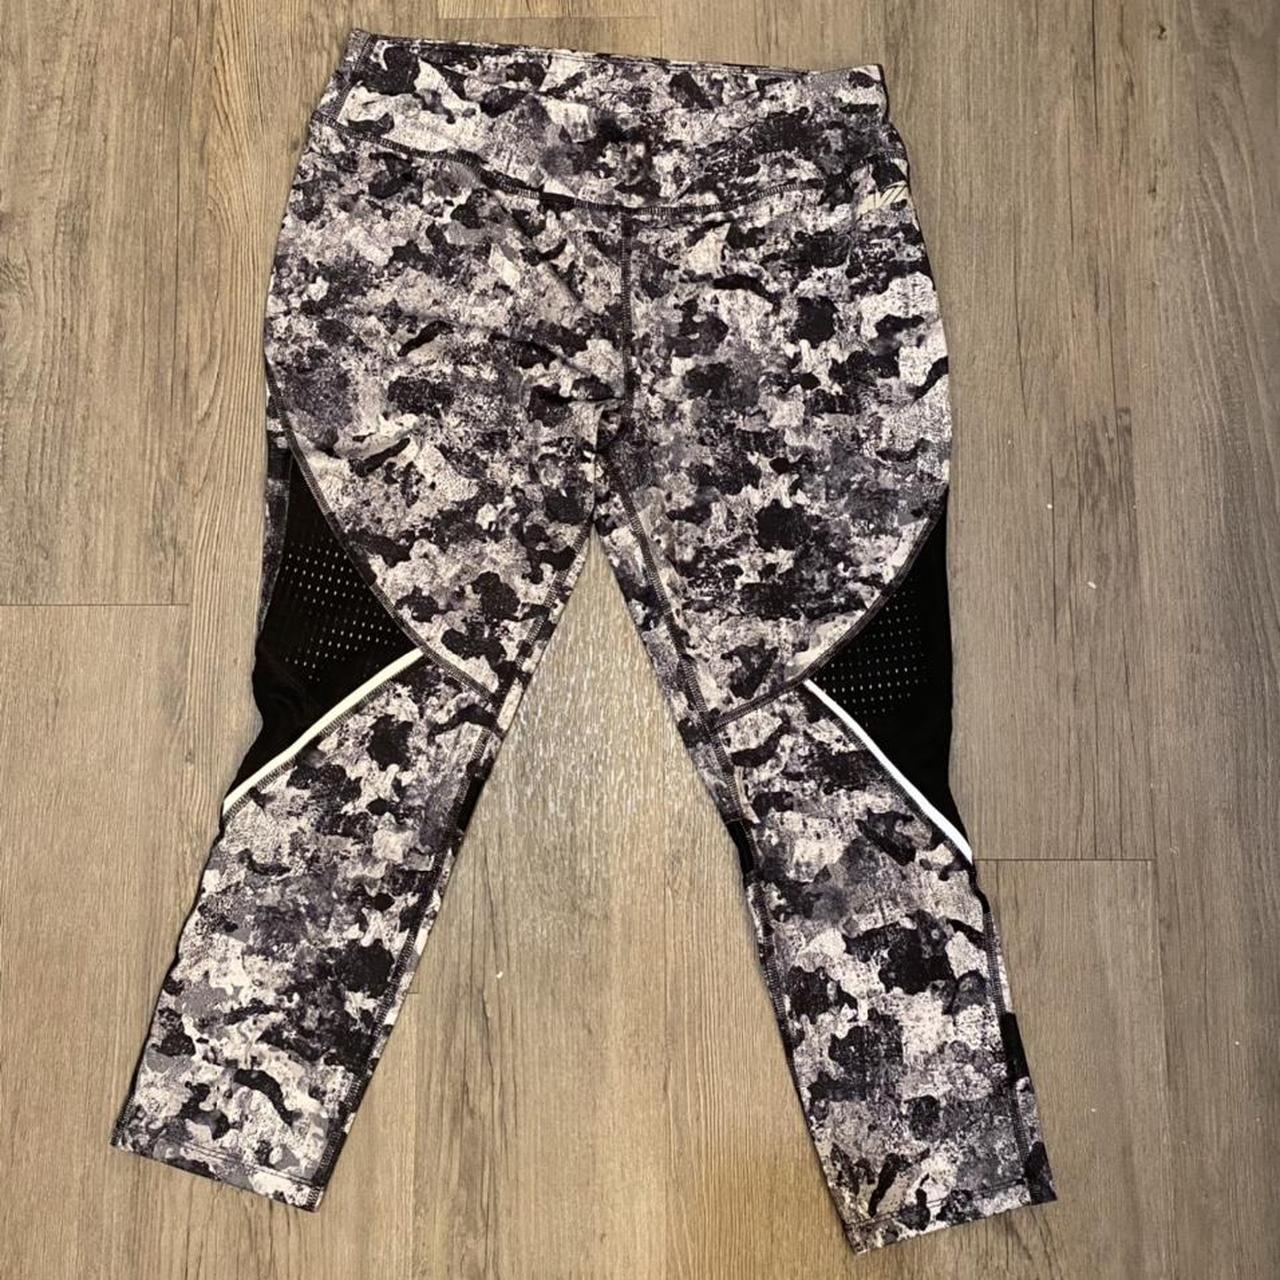 Product Image 1 - Fun printed leggings. They have